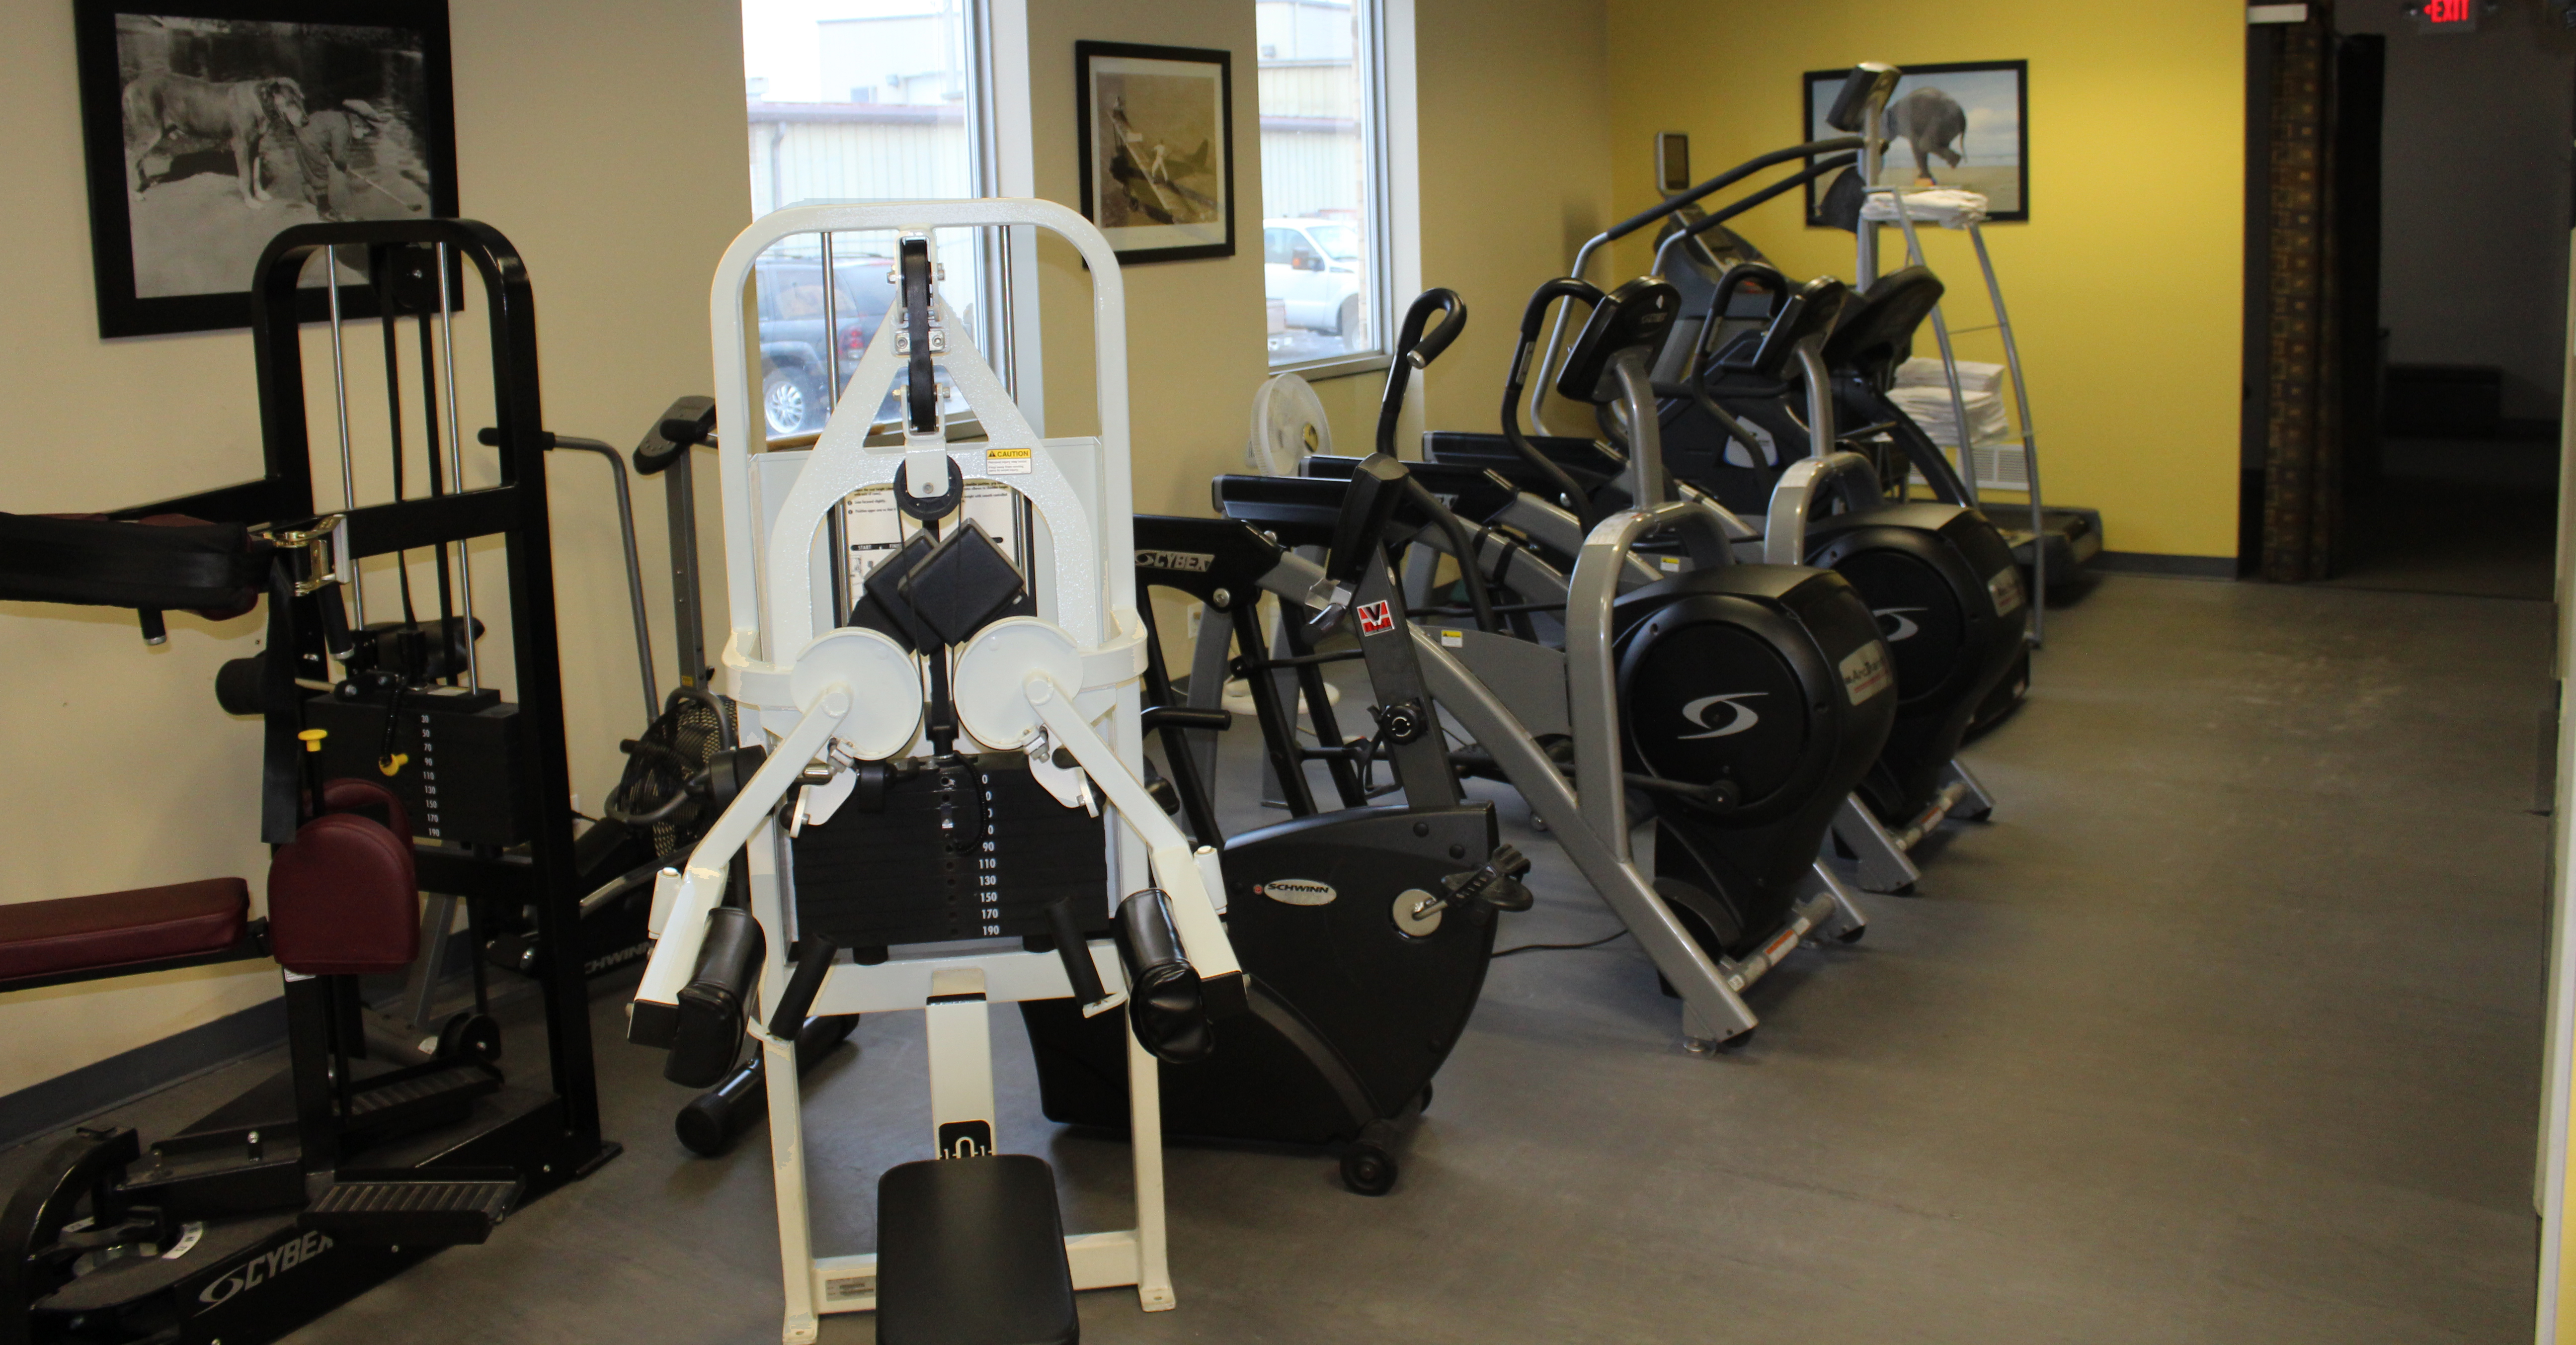 Activation-Fitness-machines-for-working-out